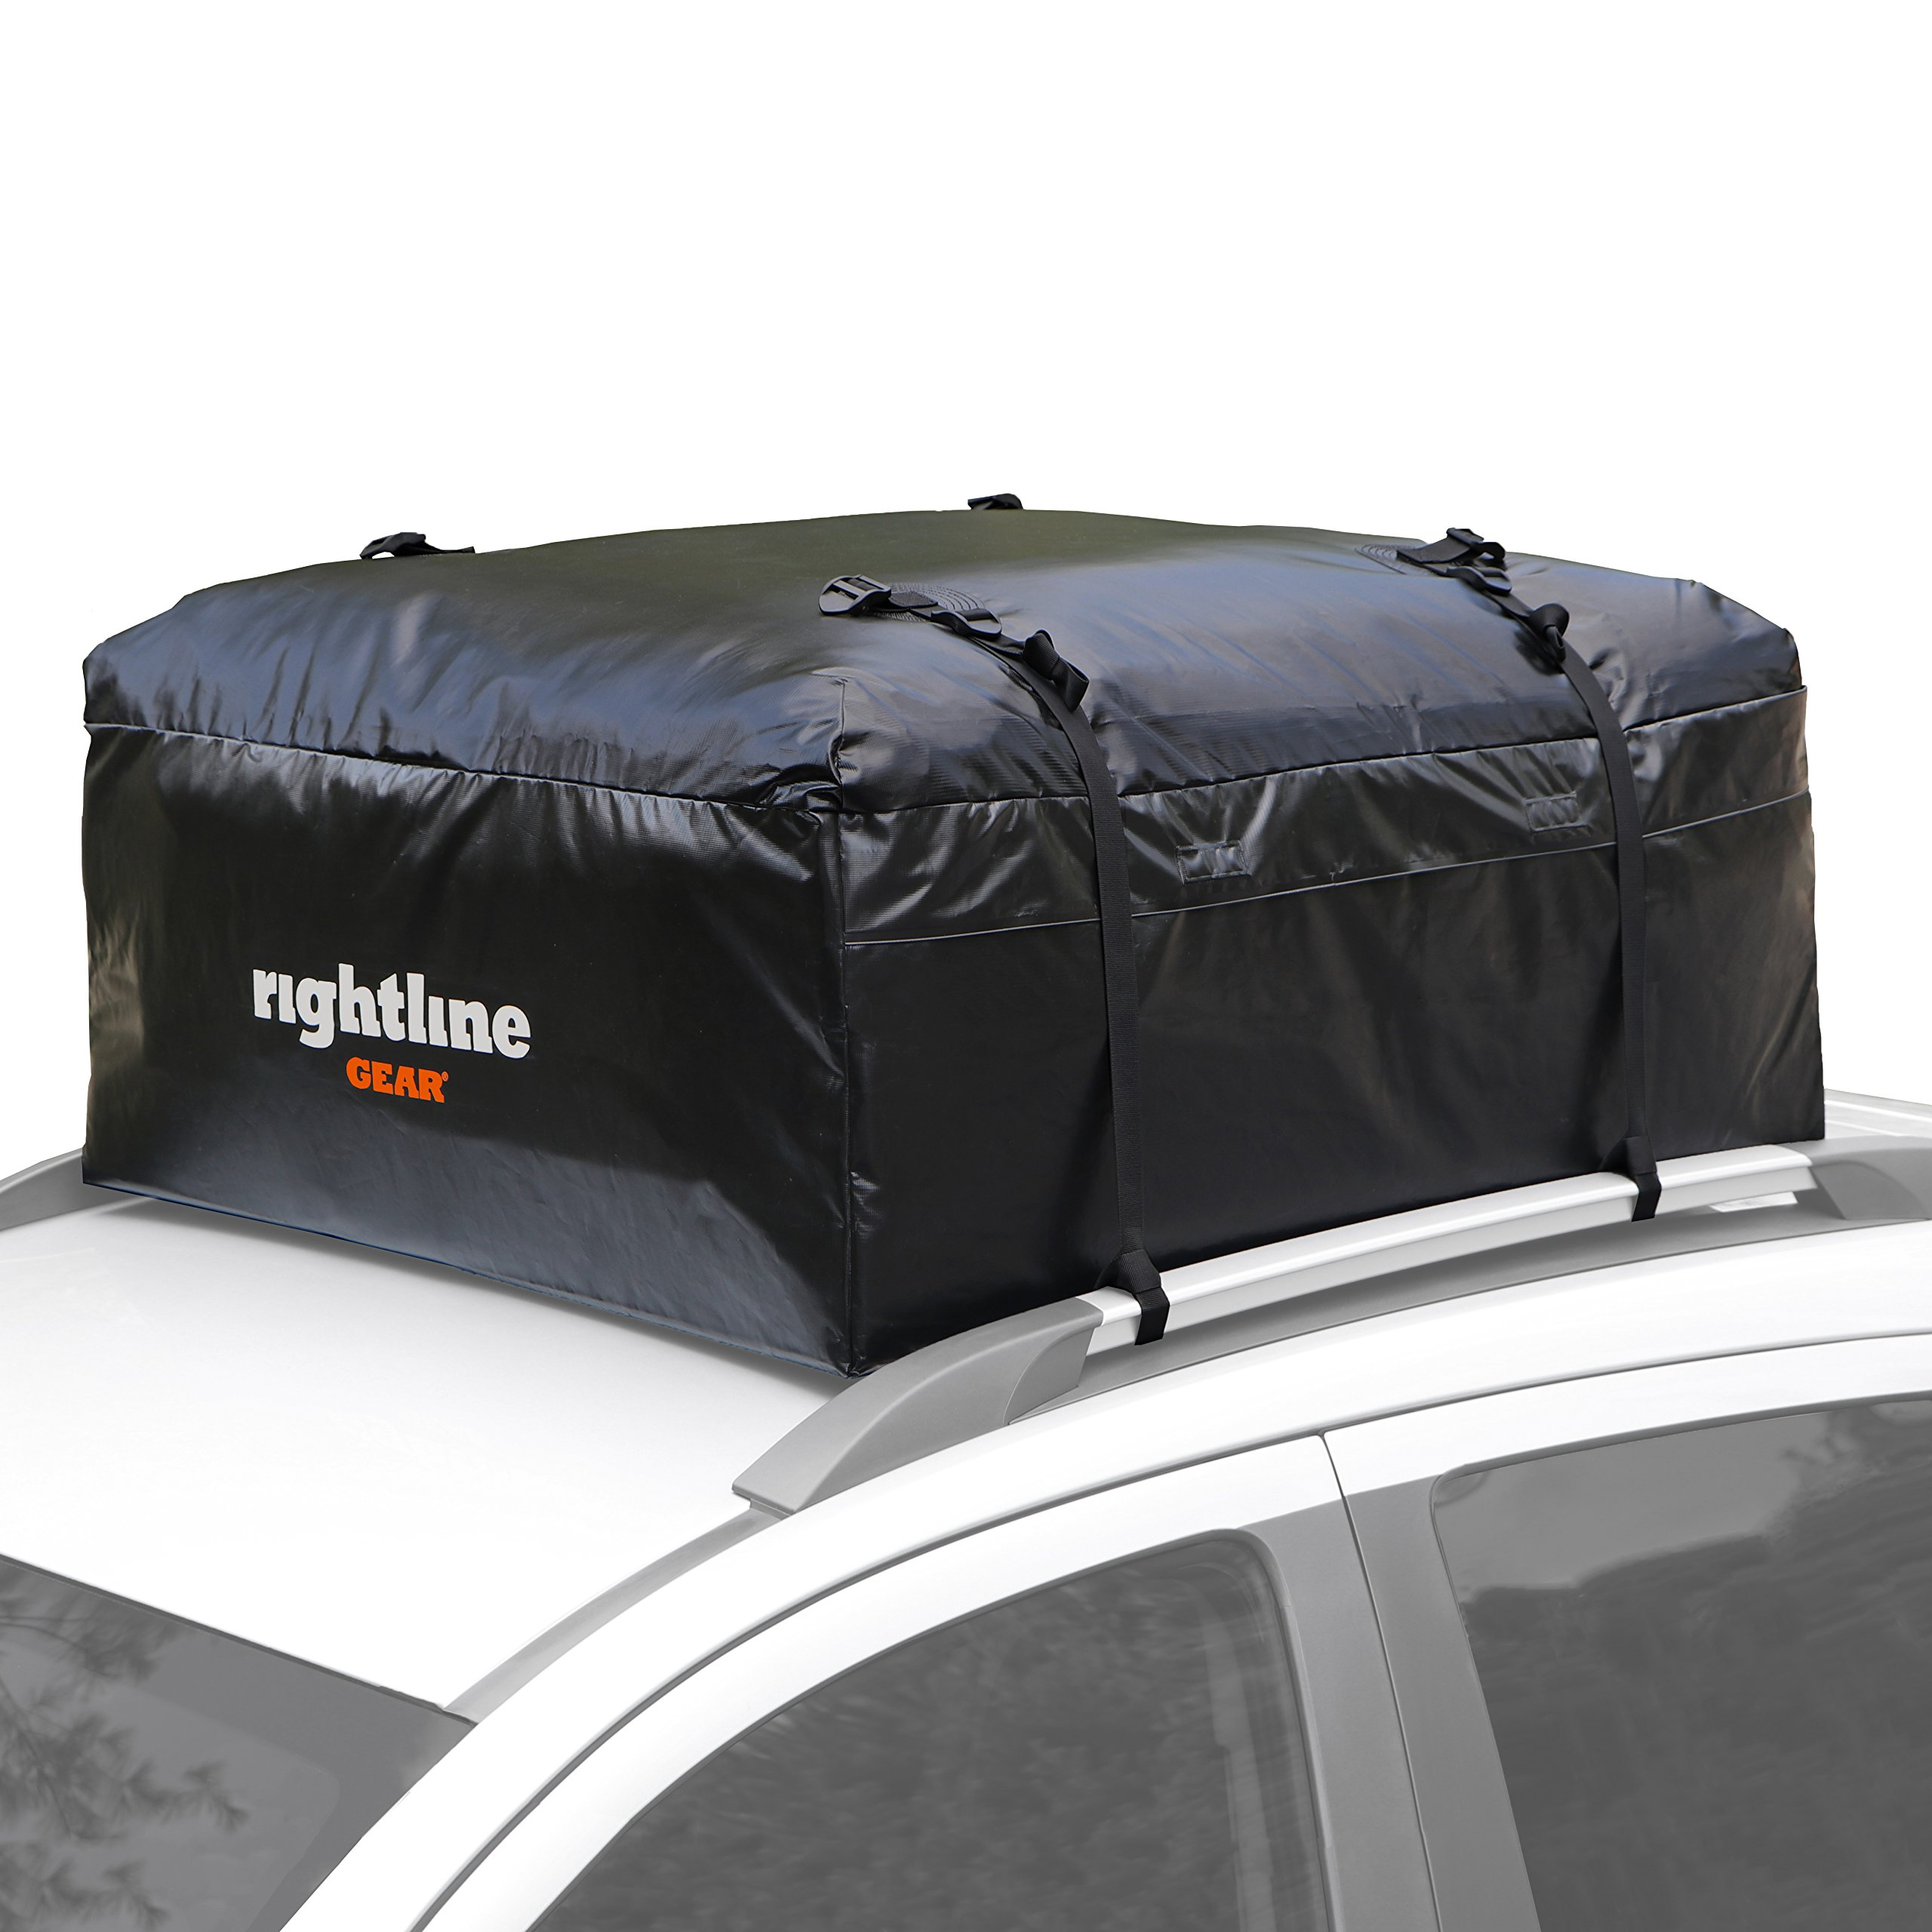 Rightline Gear 100A10 Ace 1 Car Top Carrier, 12 cu ft, Weatherproof, Attaches With or Without Roof Rack by Rightline Gear